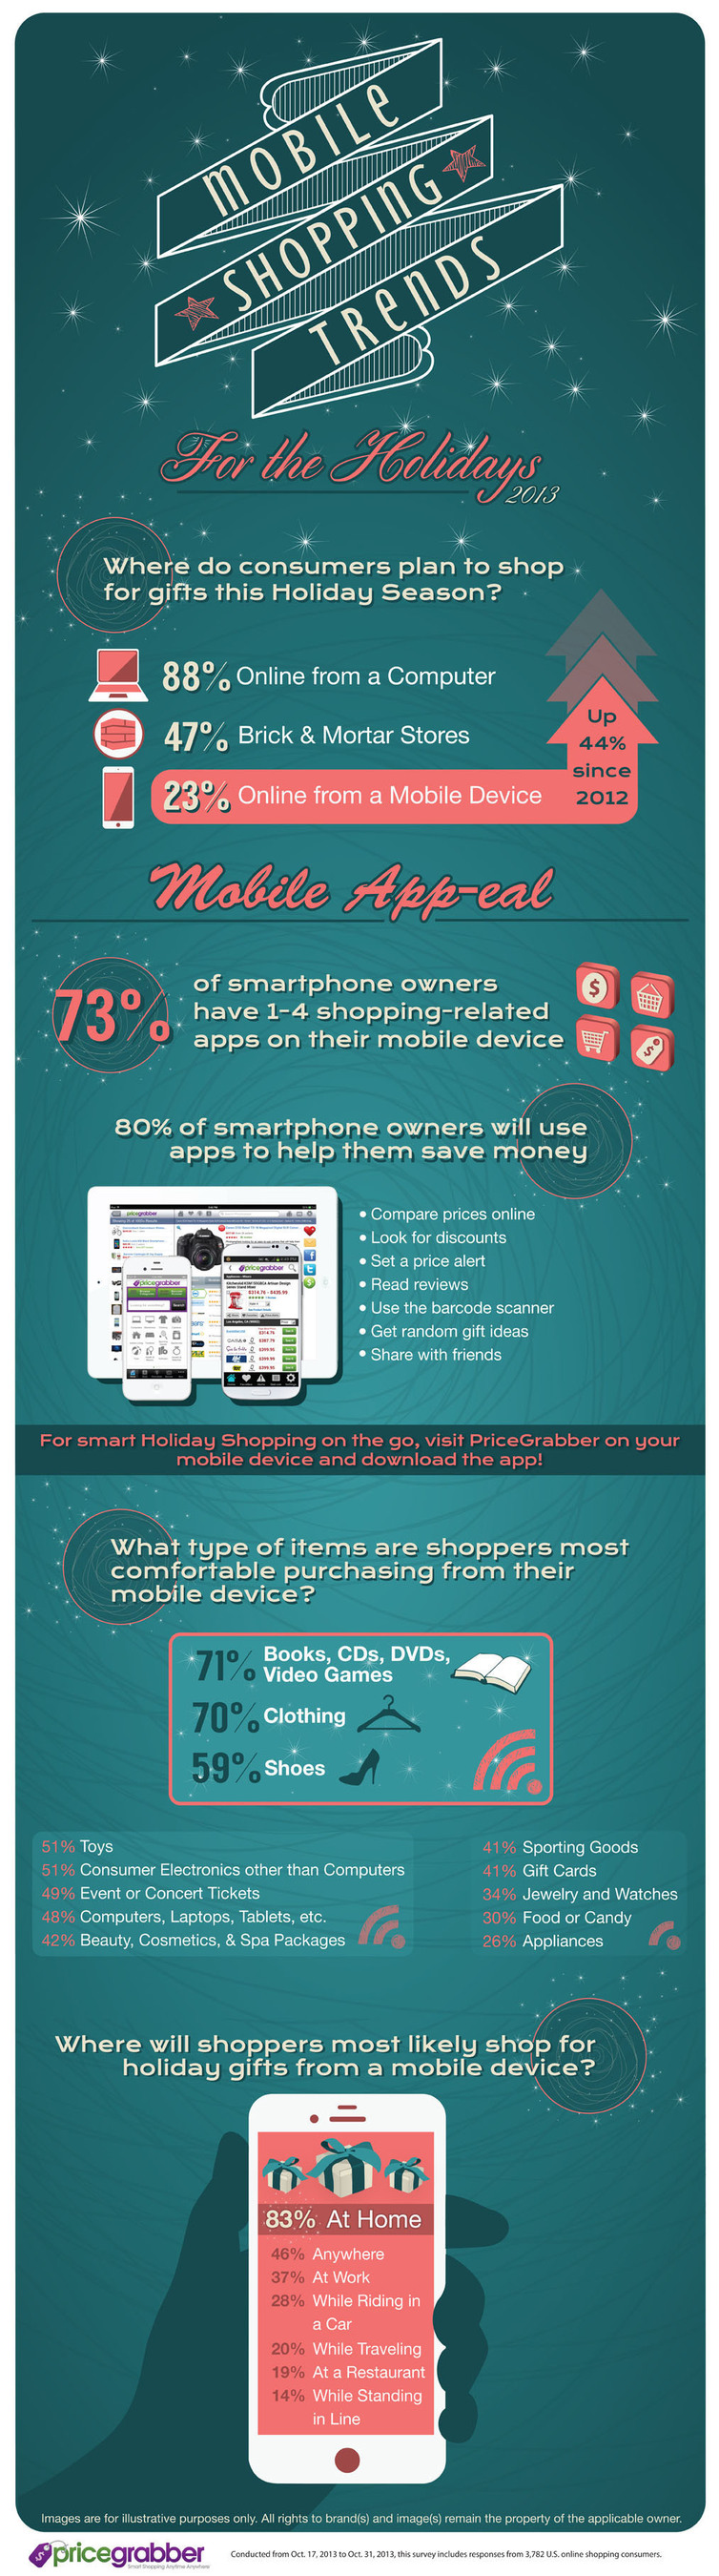 Mobile Shopping Trends For The Holidays From PriceGrabber Survey.  (PRNewsFoto/PriceGrabber.com)